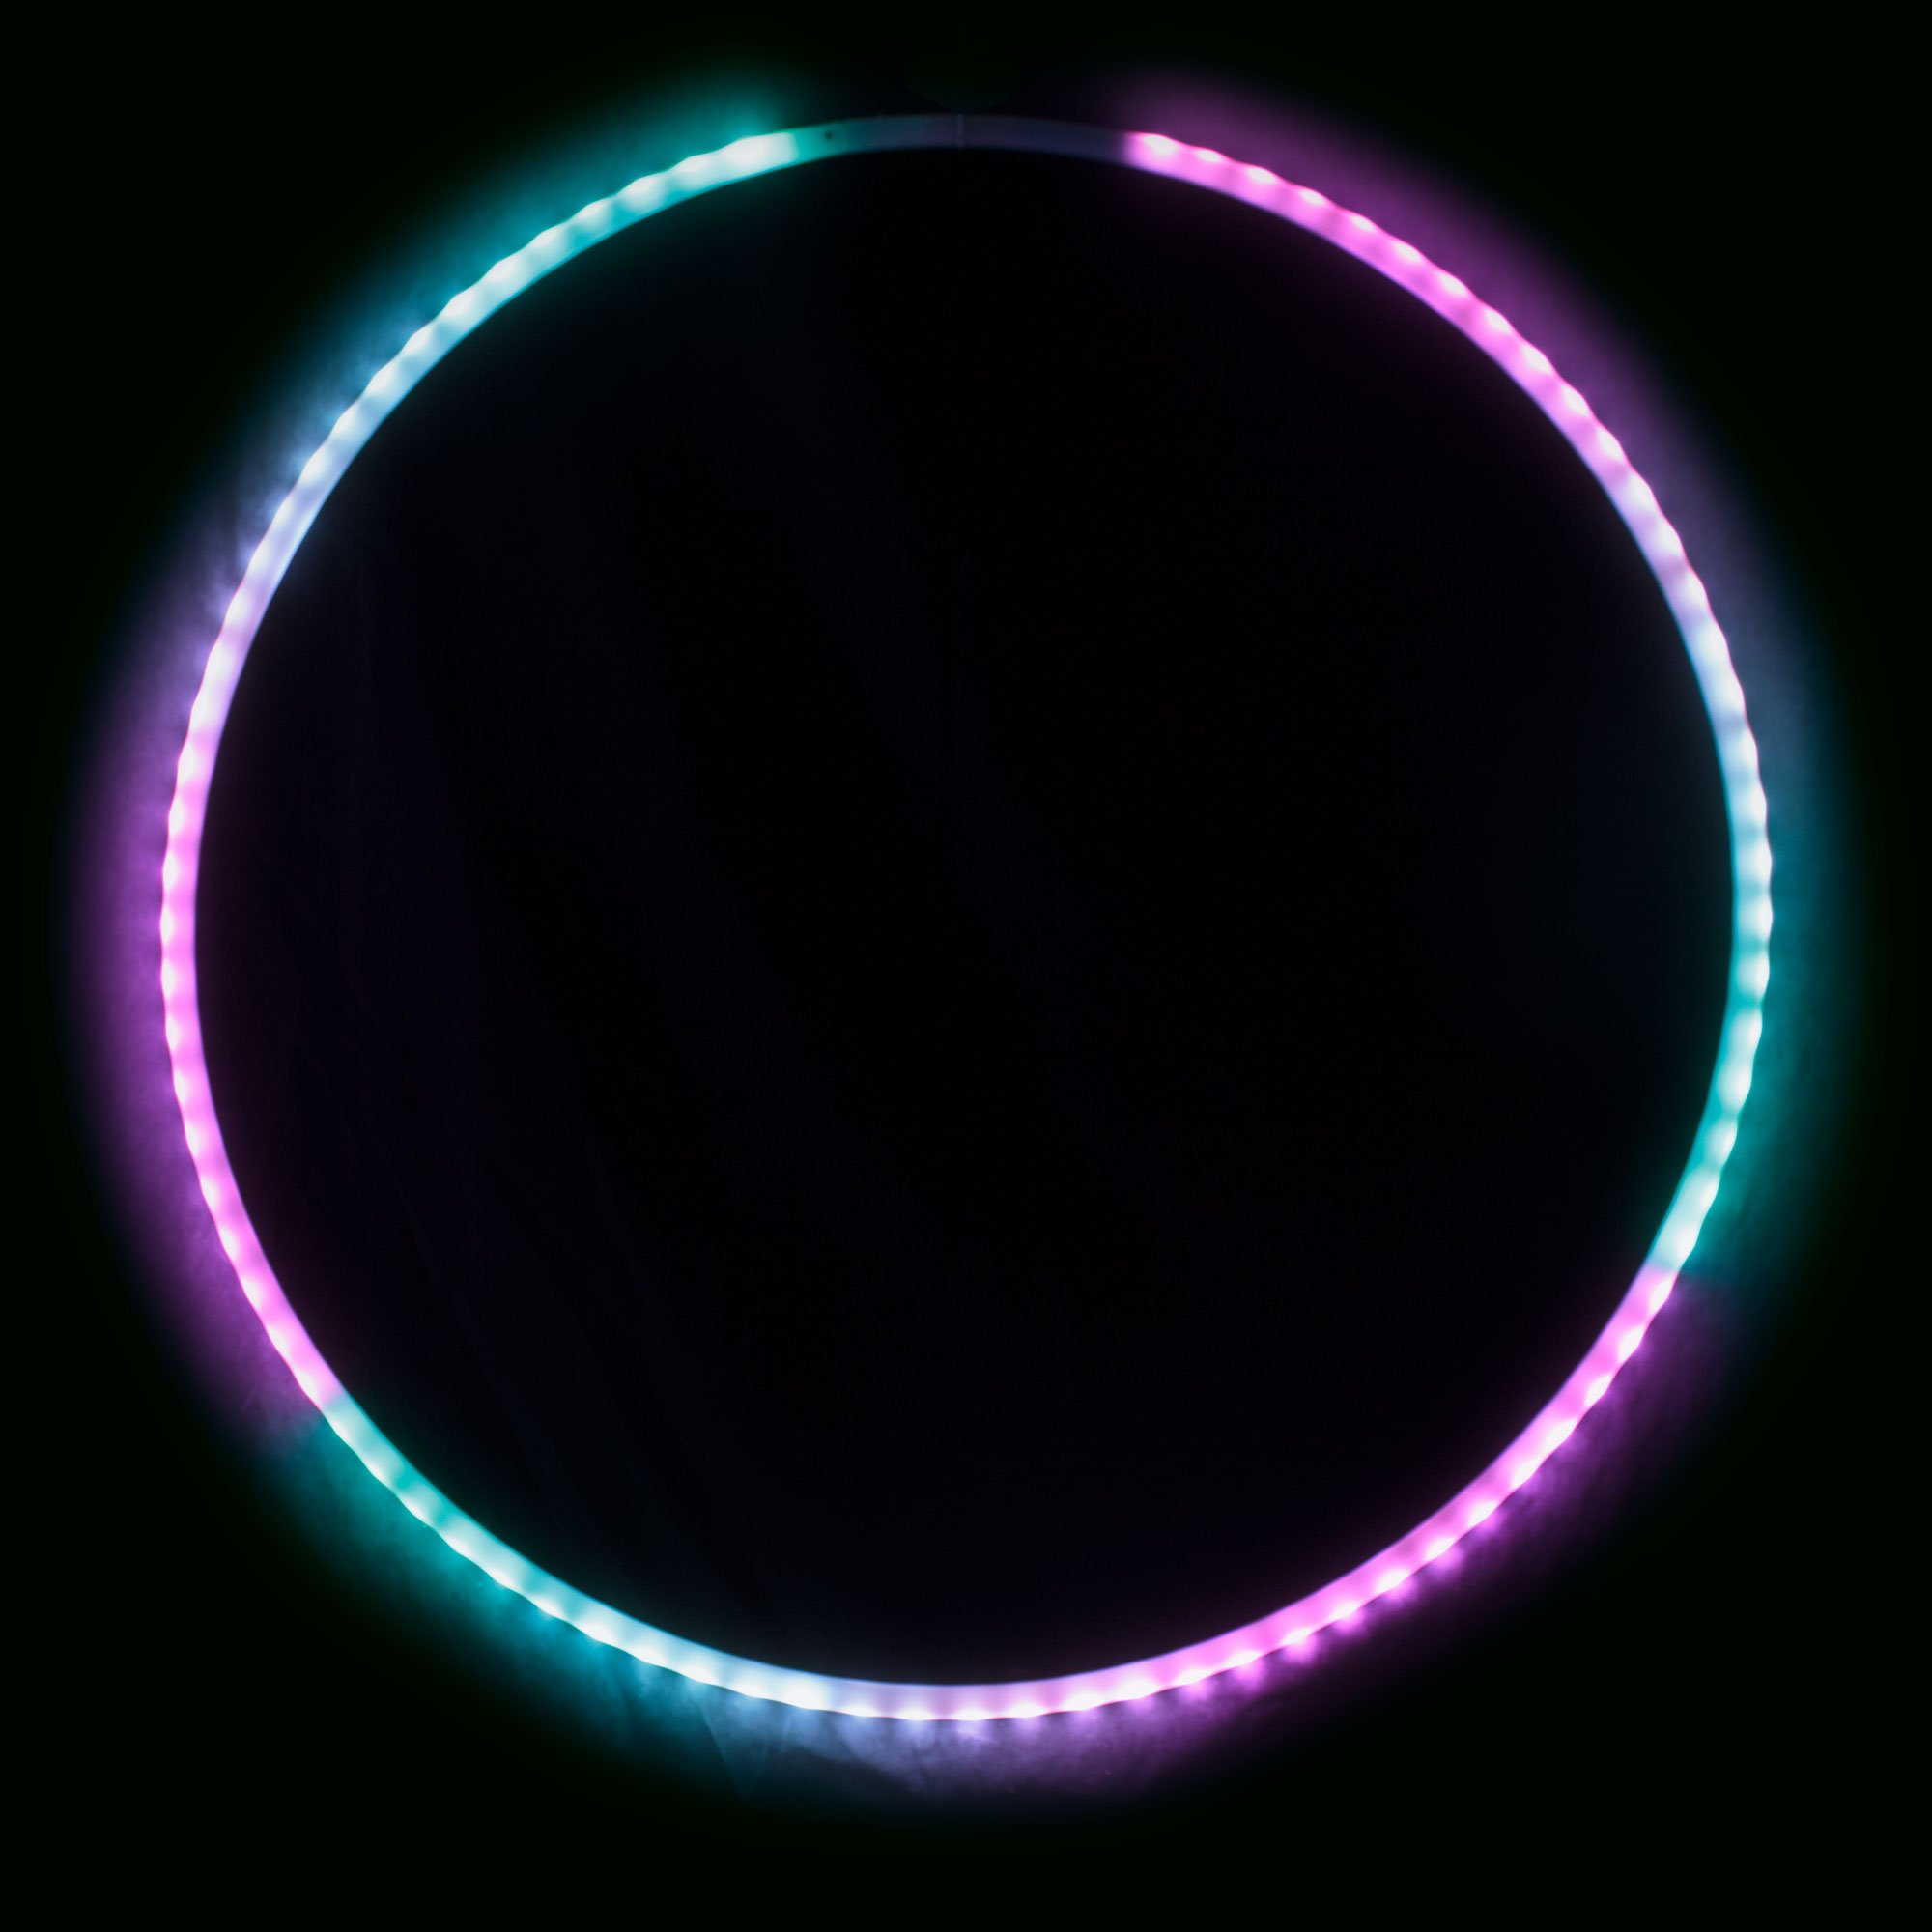 Echo Glow - Light Up Collapsible Professional Hula Hoop with 84 LED's, Fully Rechargeable + Remote Control! 300+ Light Patterns! by Echo Hoop (Image #7)